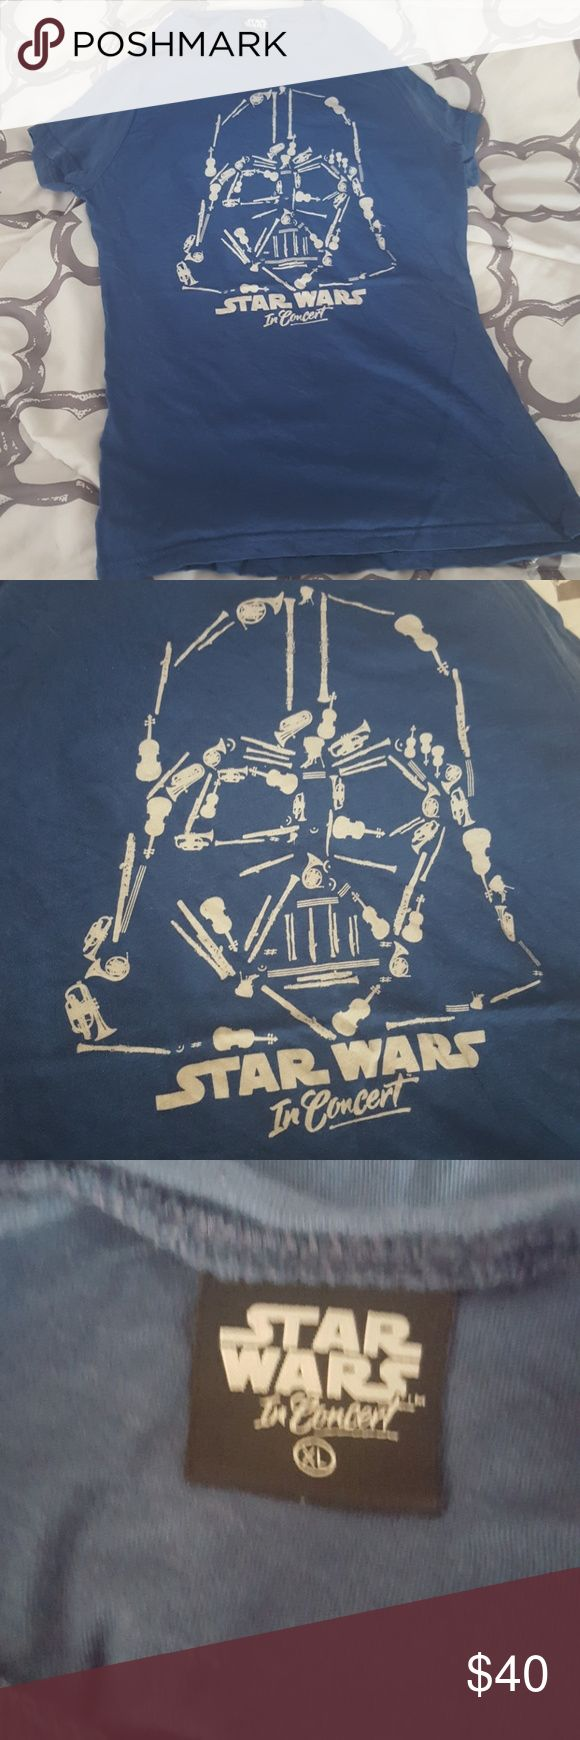 Star Wars in Concert tee from their touring show Souvenir tshirt from Star Wars In Concert show. Tops Tees - Short Sleeve